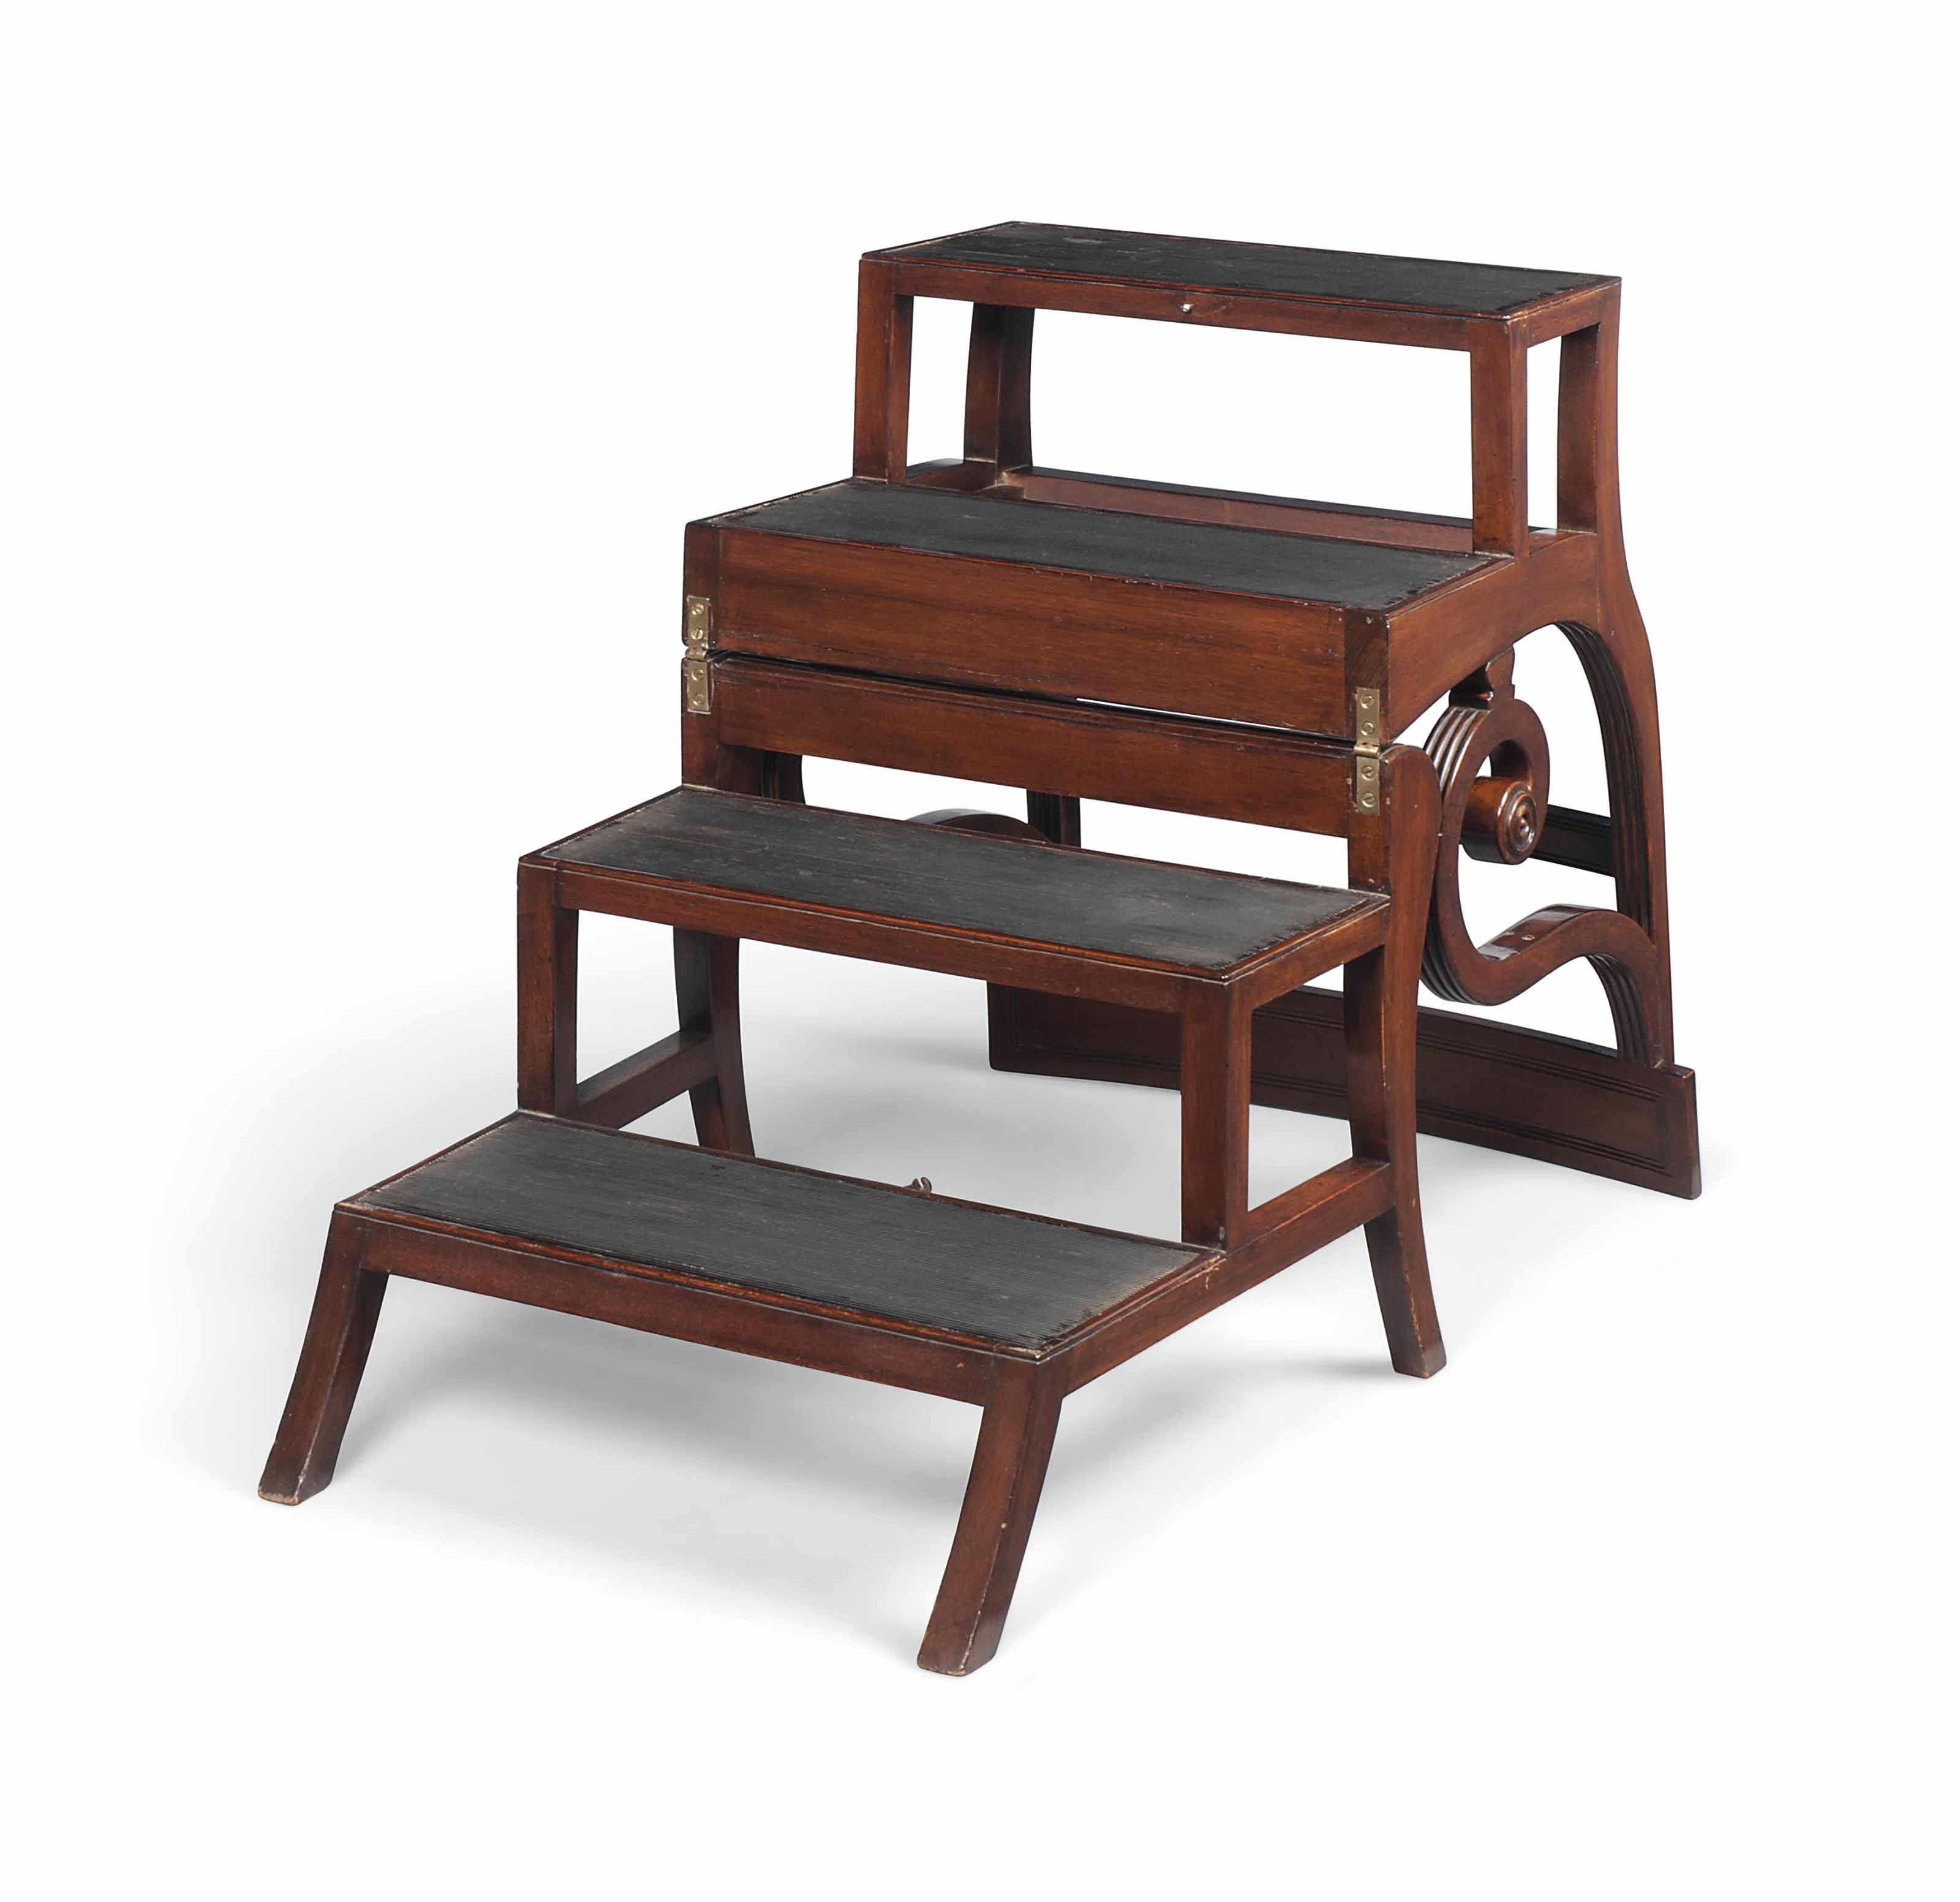 chairs b museum chase product garden chevy cafe from library furniture caf en chair by